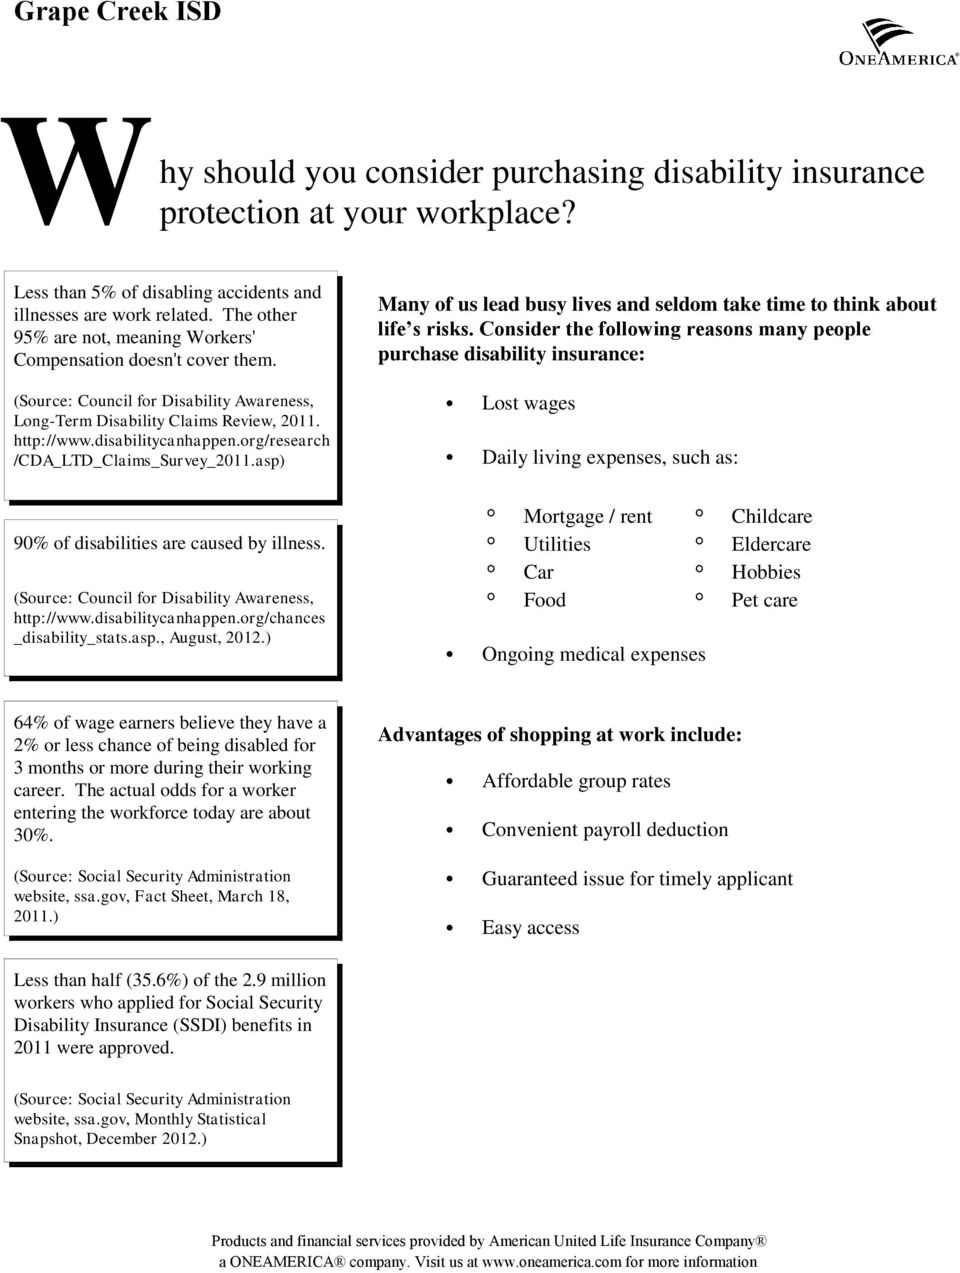 Consider the following reasons many people purchase disability insurance: (Source: Council for Disability Awareness, Long-Term Disability Claims Review, 2011. http://www.disabilitycanhappen.